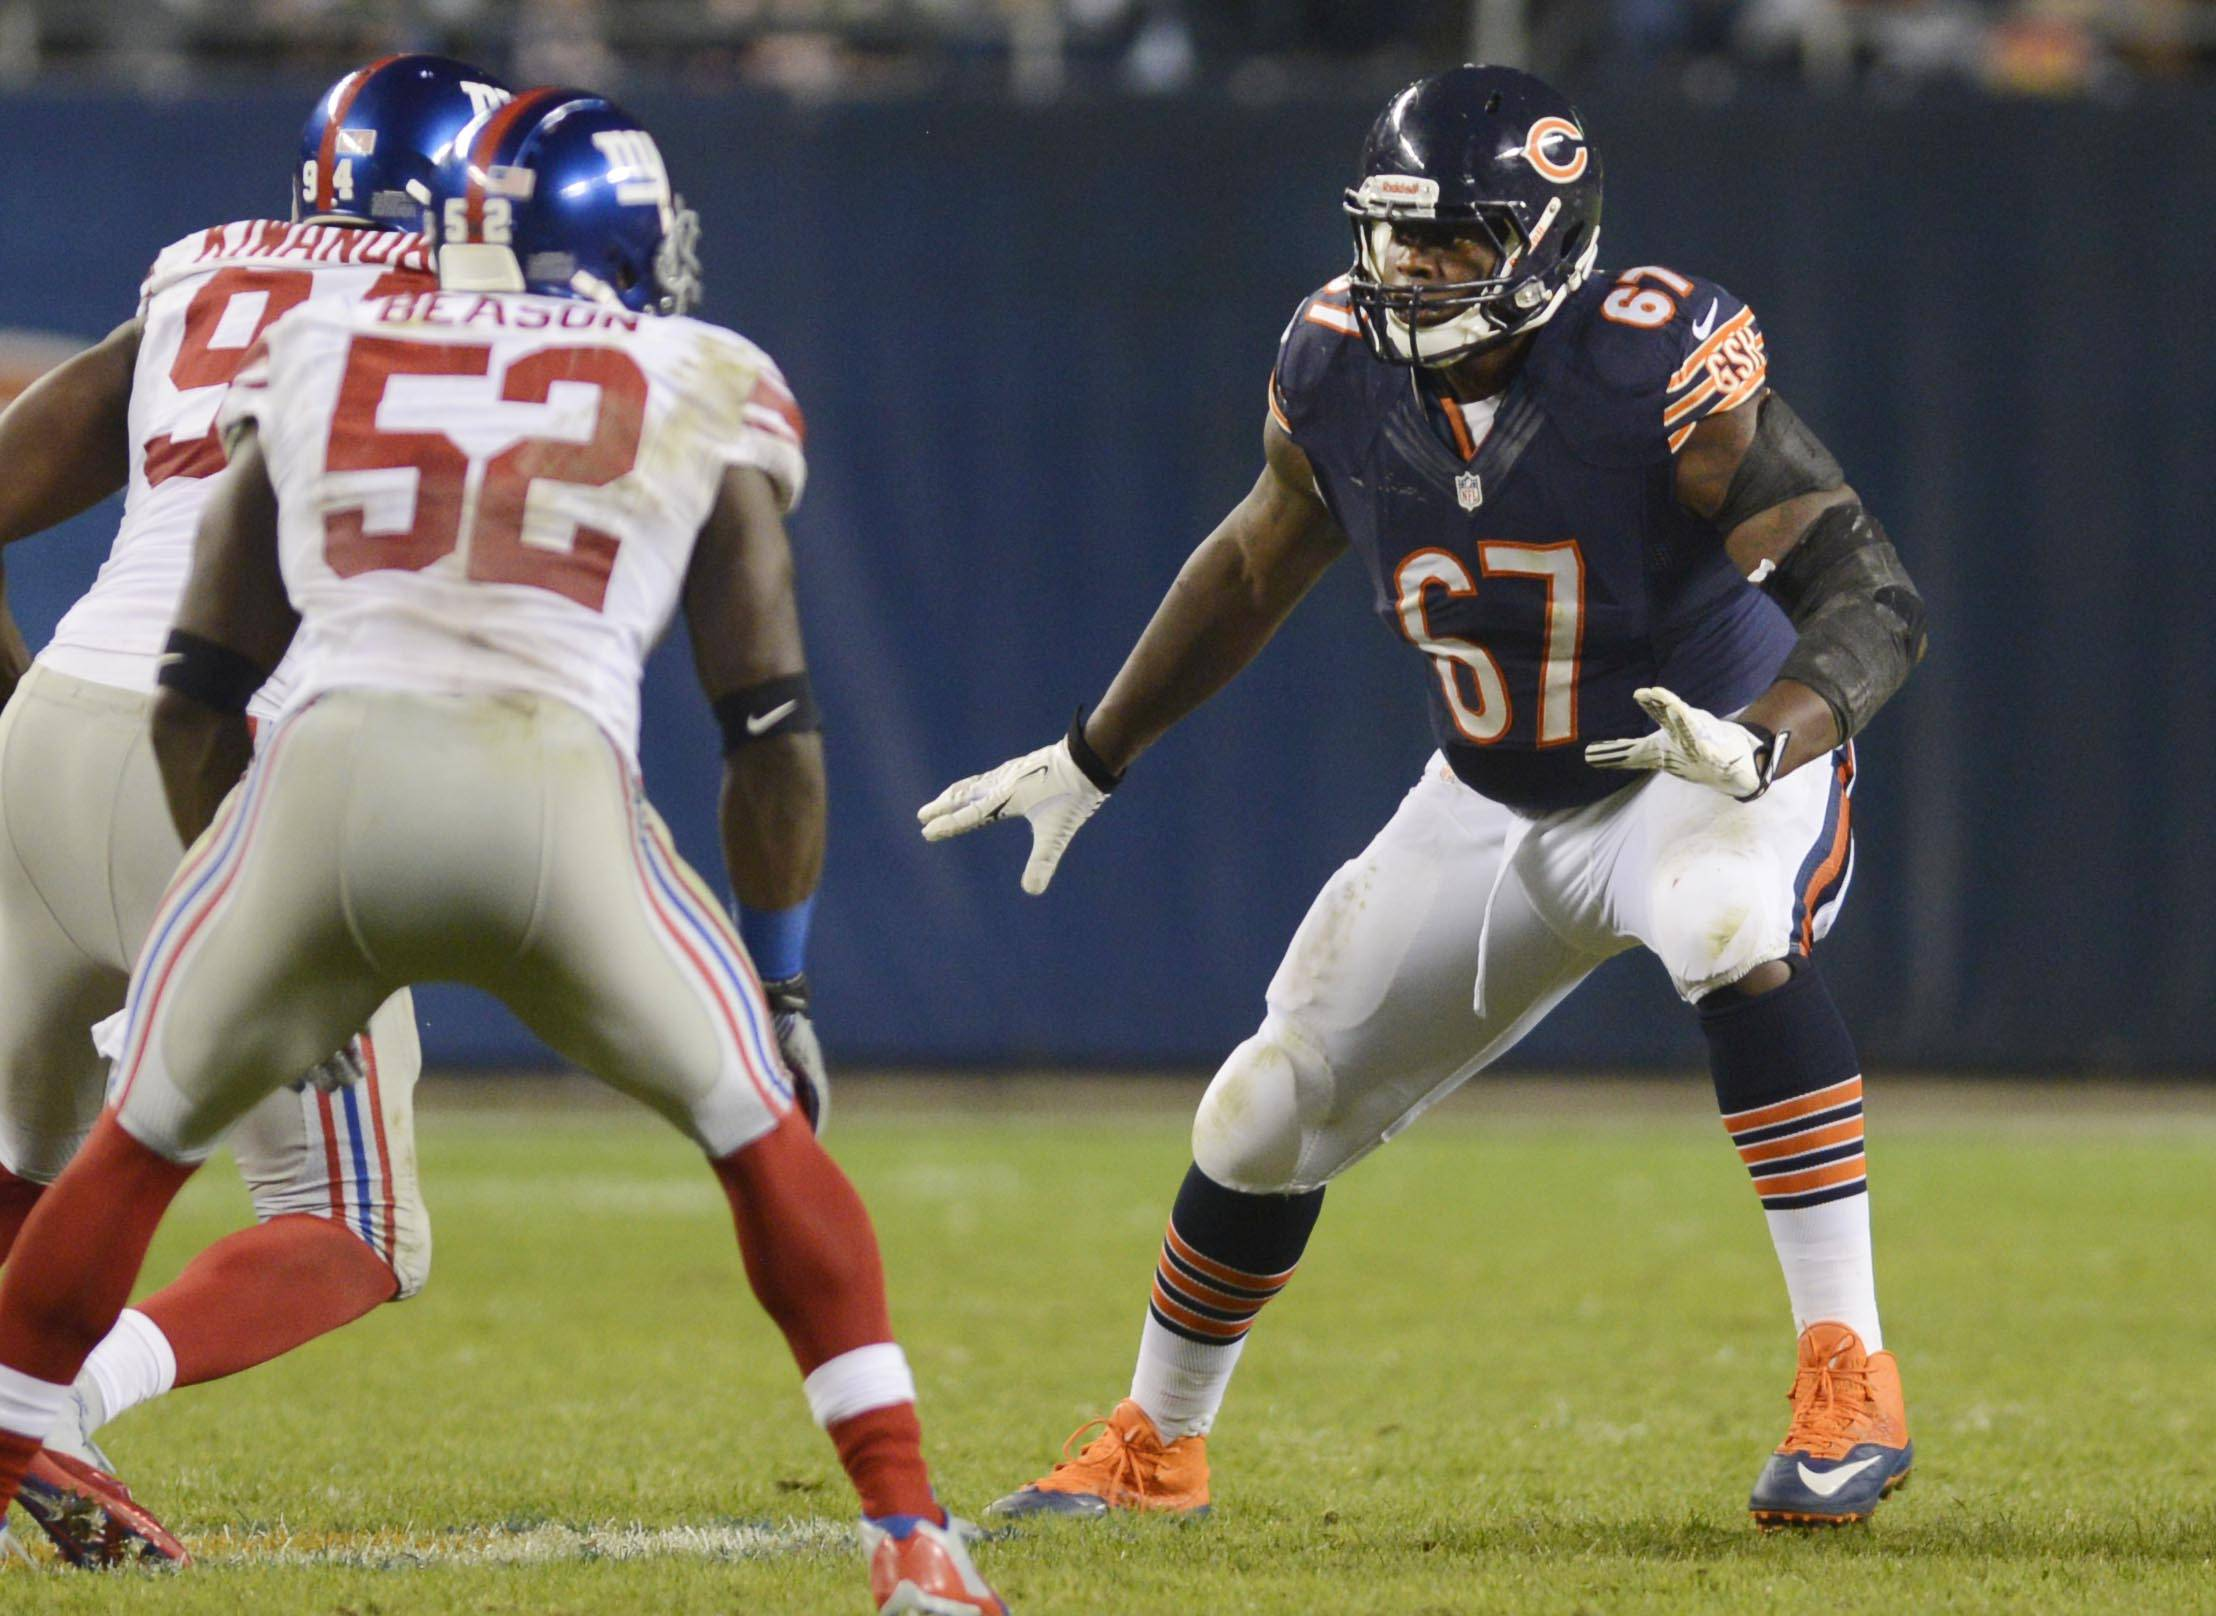 Bears offensive tackle Jordan Mills has been out with a foot injury since Aug. 6.